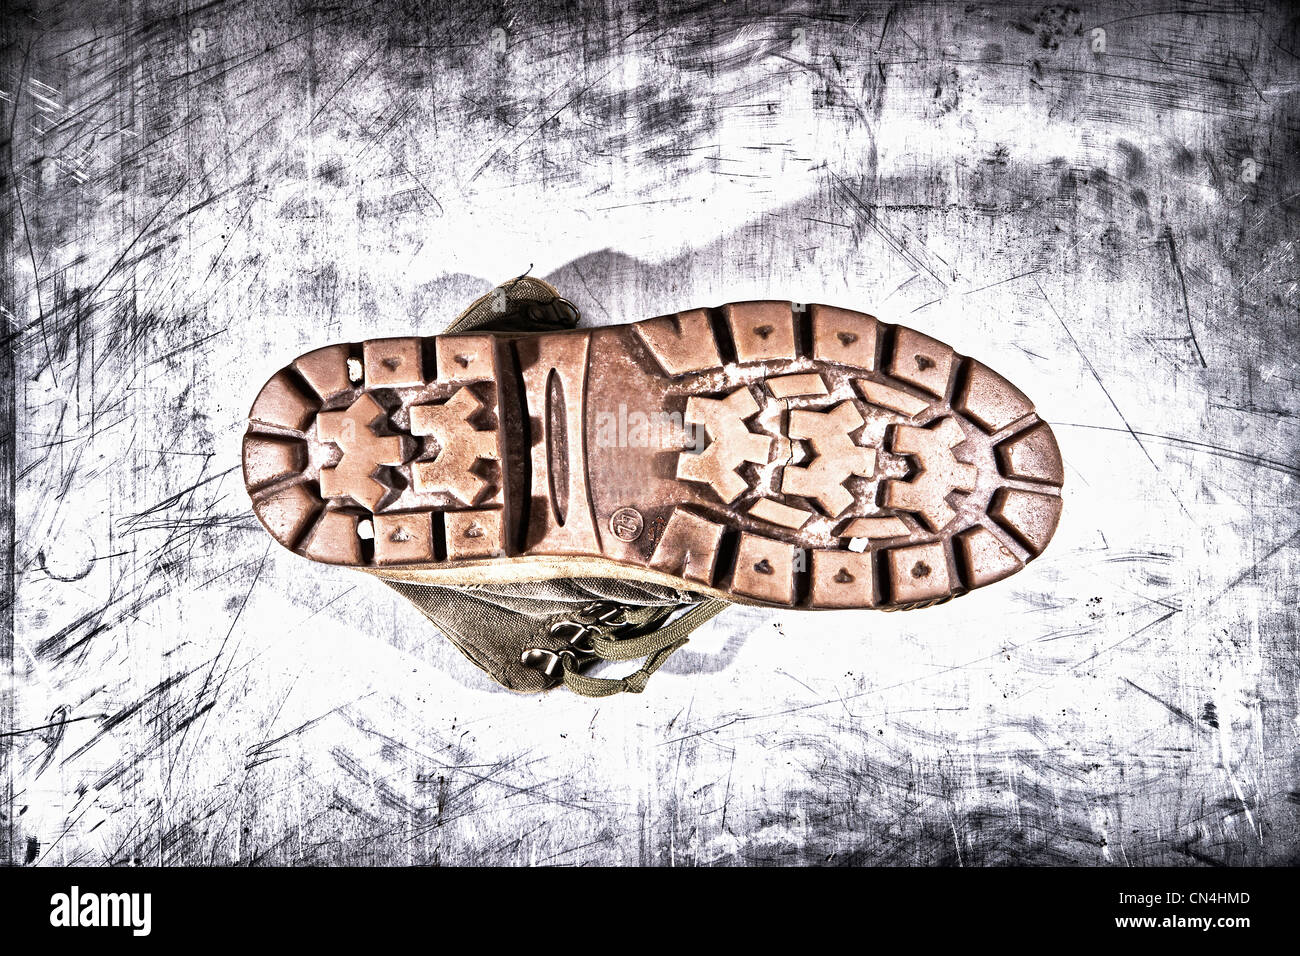 Boot sole - Stock Image